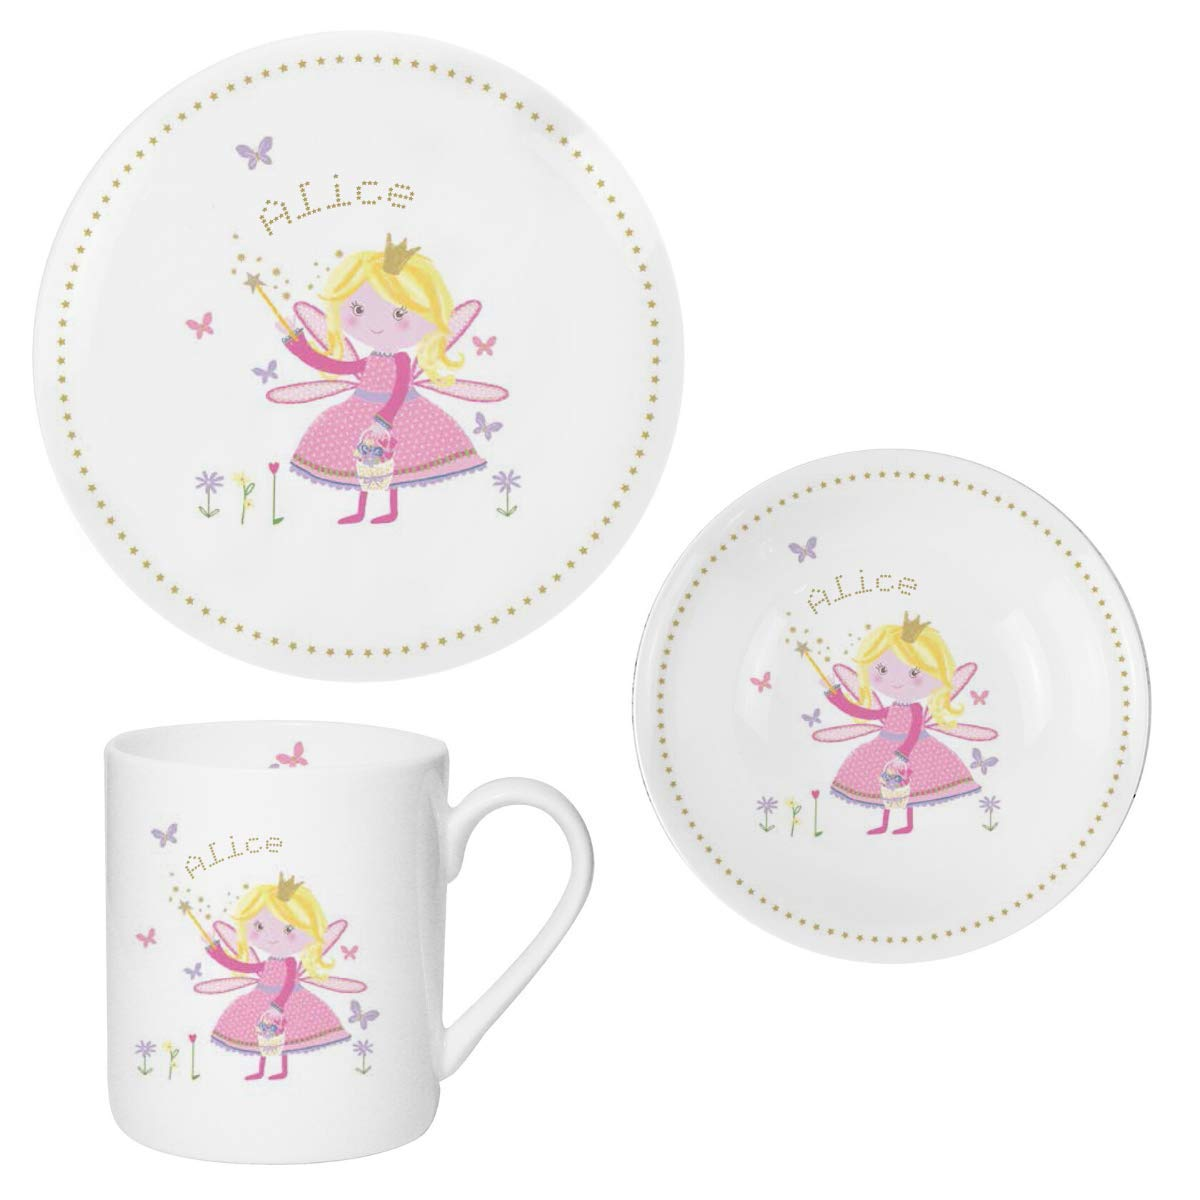 Kids Dinner Set Personalised Baby Gifts Girl Garden Fairy Design Customised Any Name